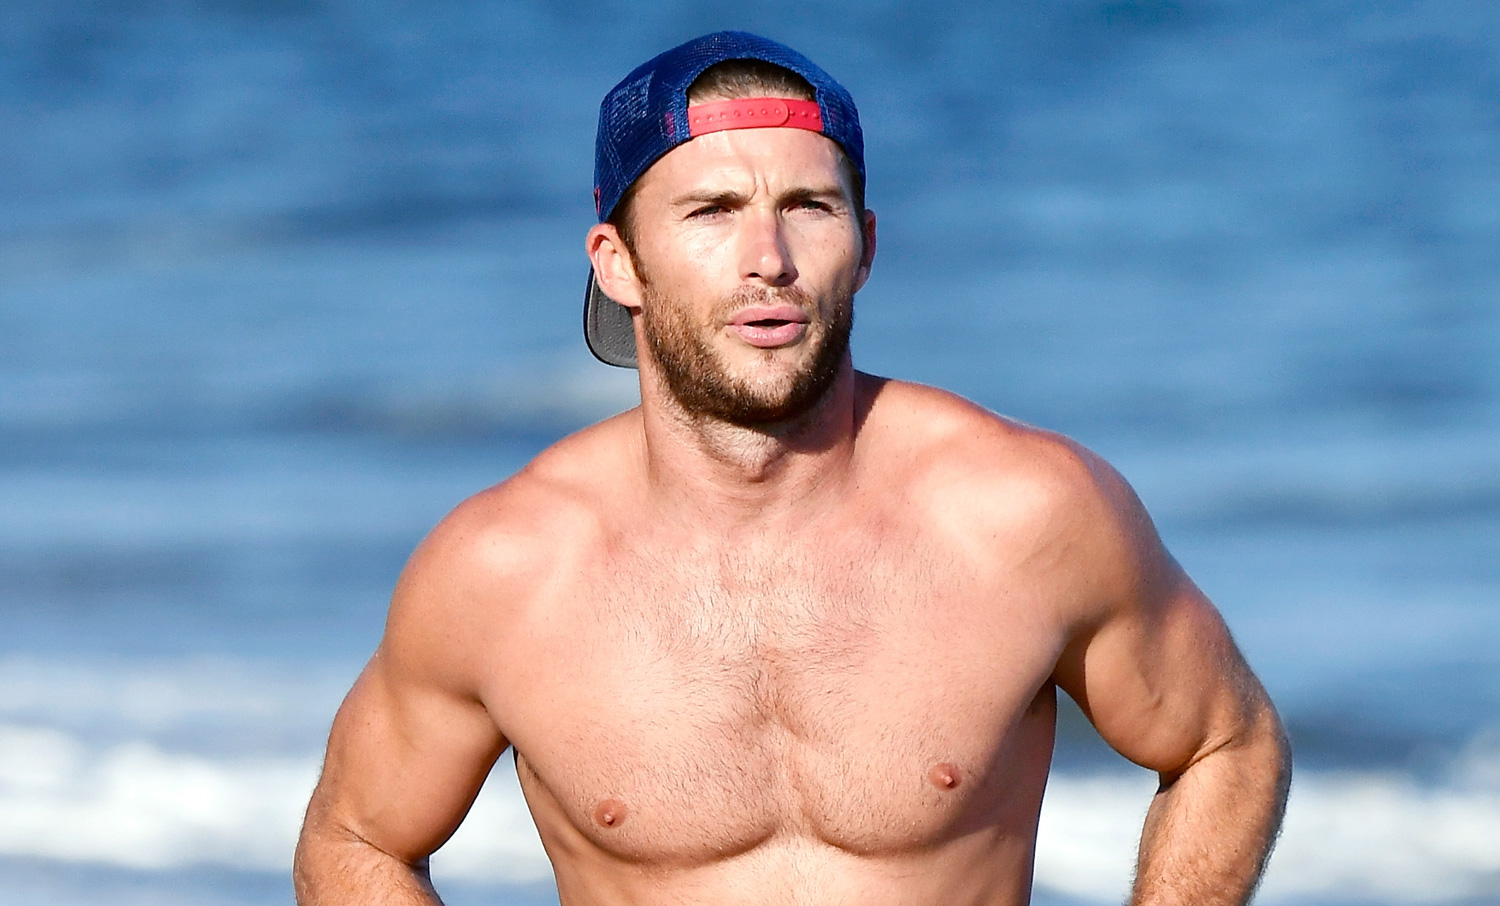 Scott Eastwood Goes Shirtless For A Run Along The Beach